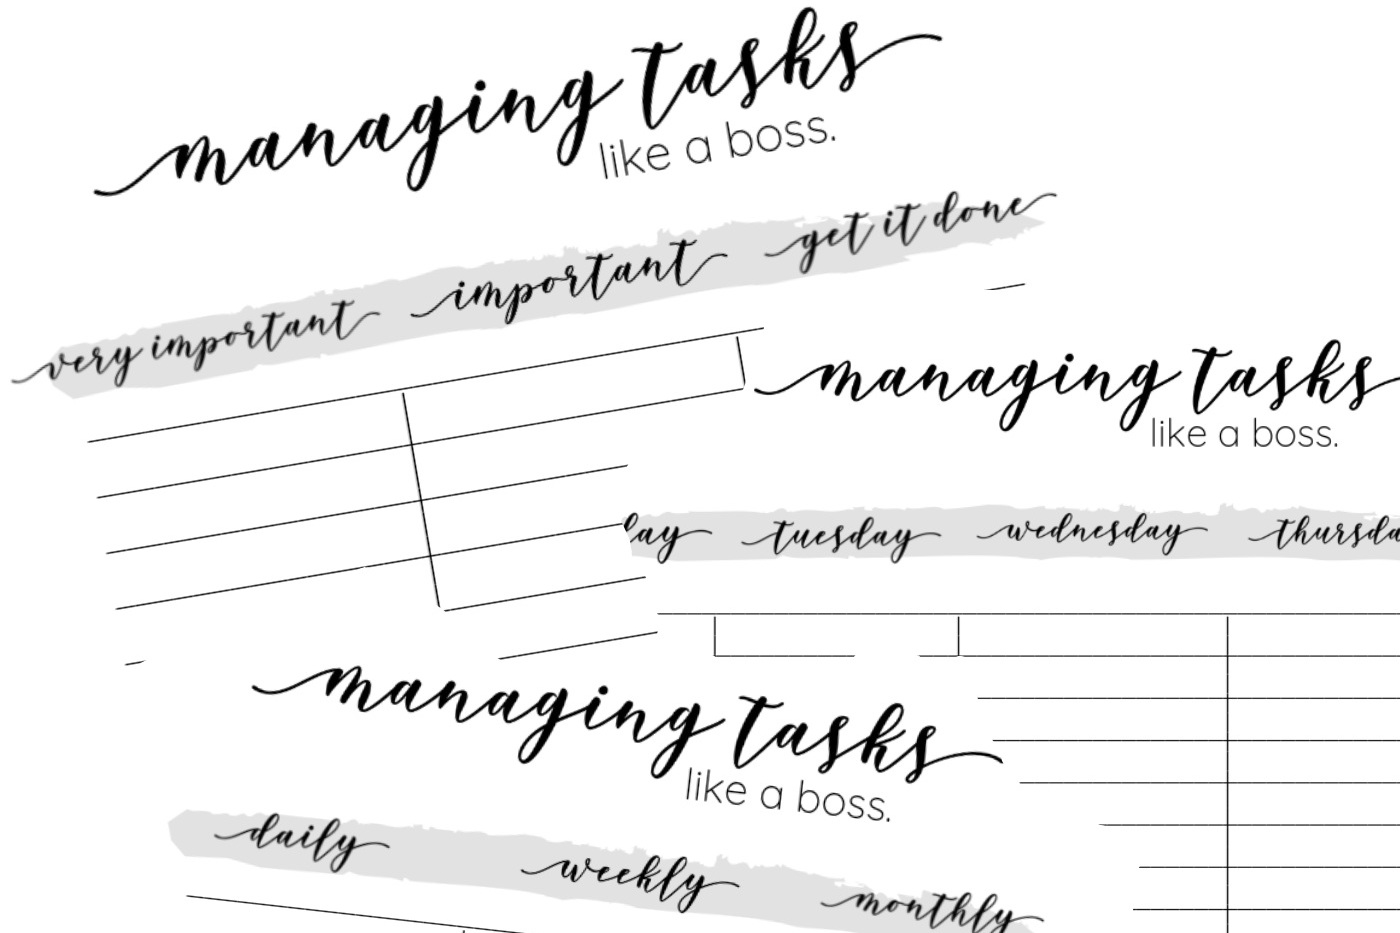 FREE PRODUCTIVITY WORKSHEETS   Manage Your Tasks Like A Boss with these Free Printable Worksheets. Get your free productivity worksheets now!